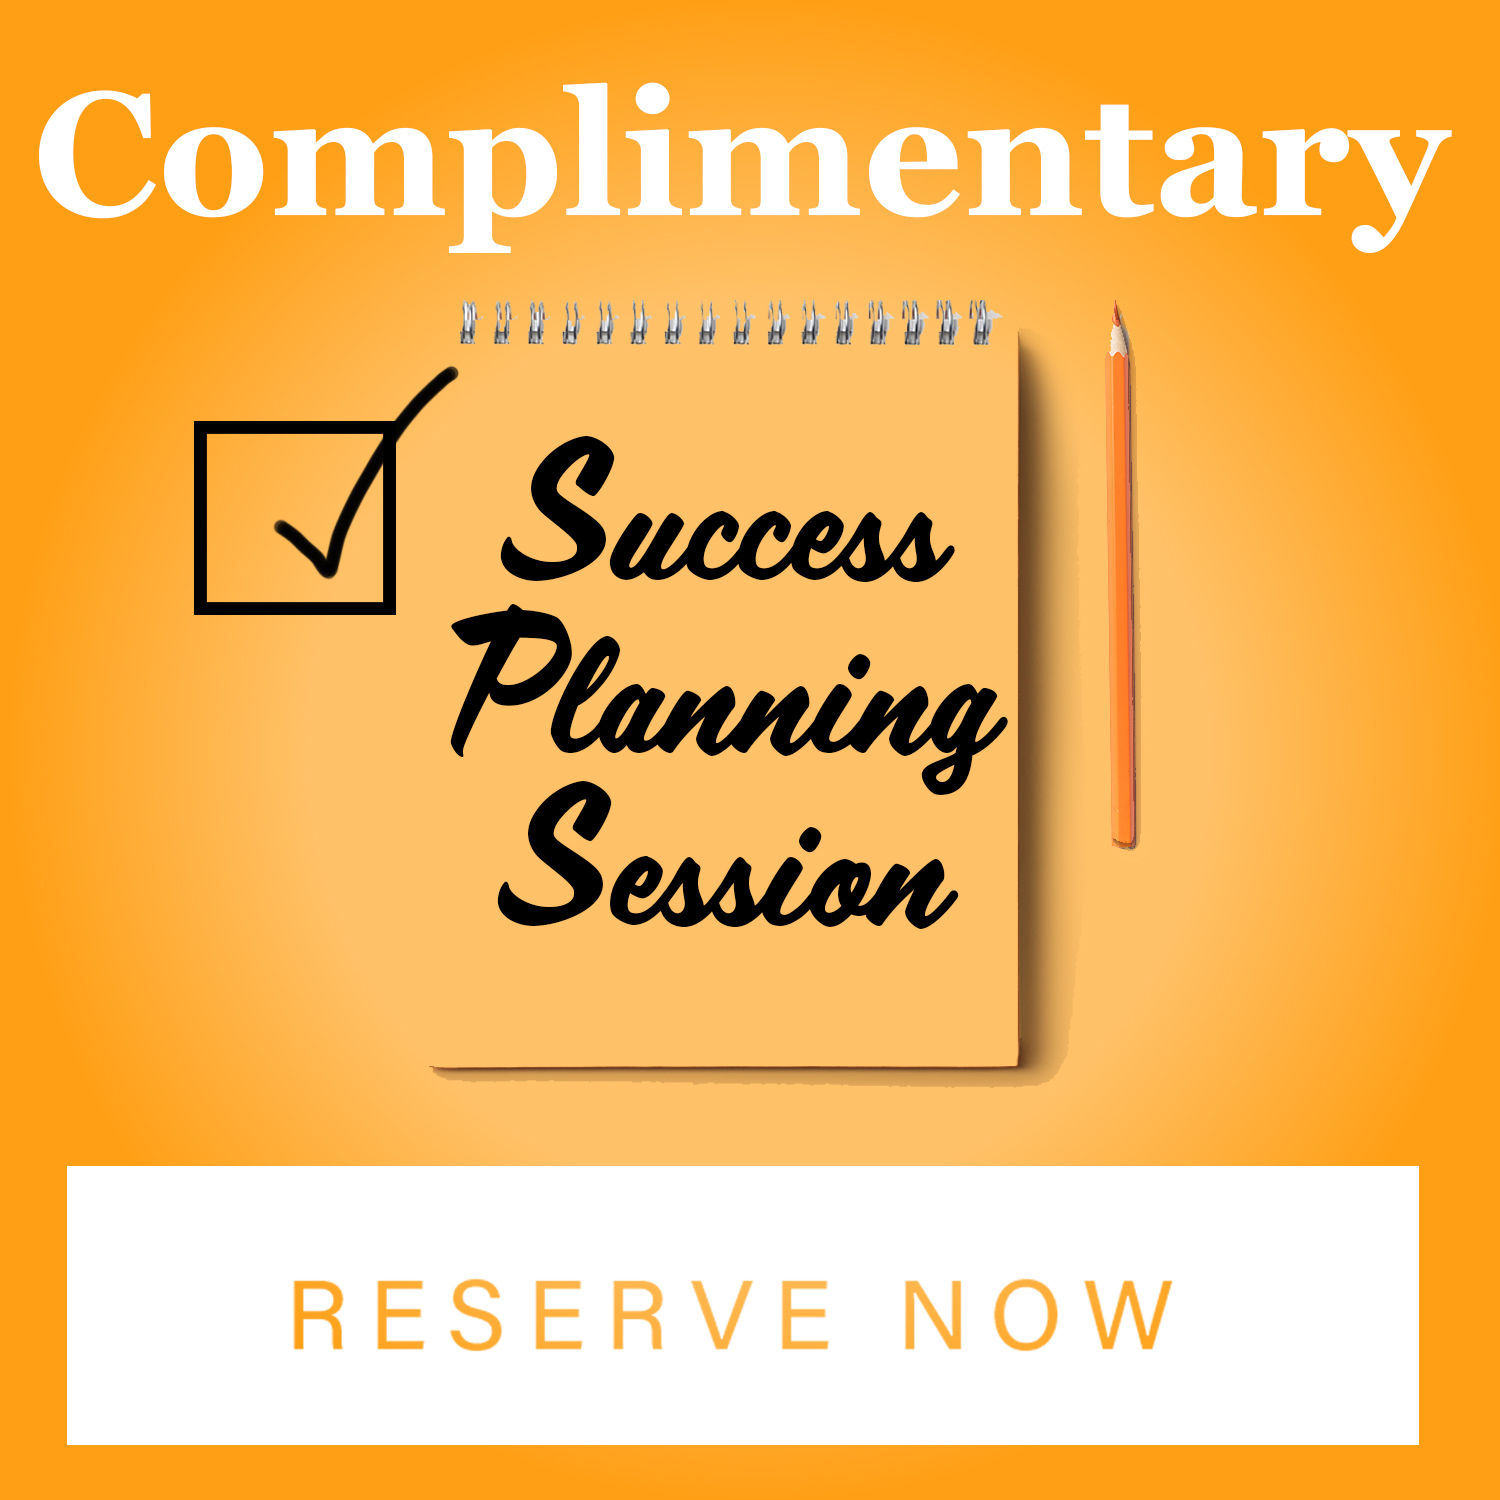 Complimentary Success Planning Session